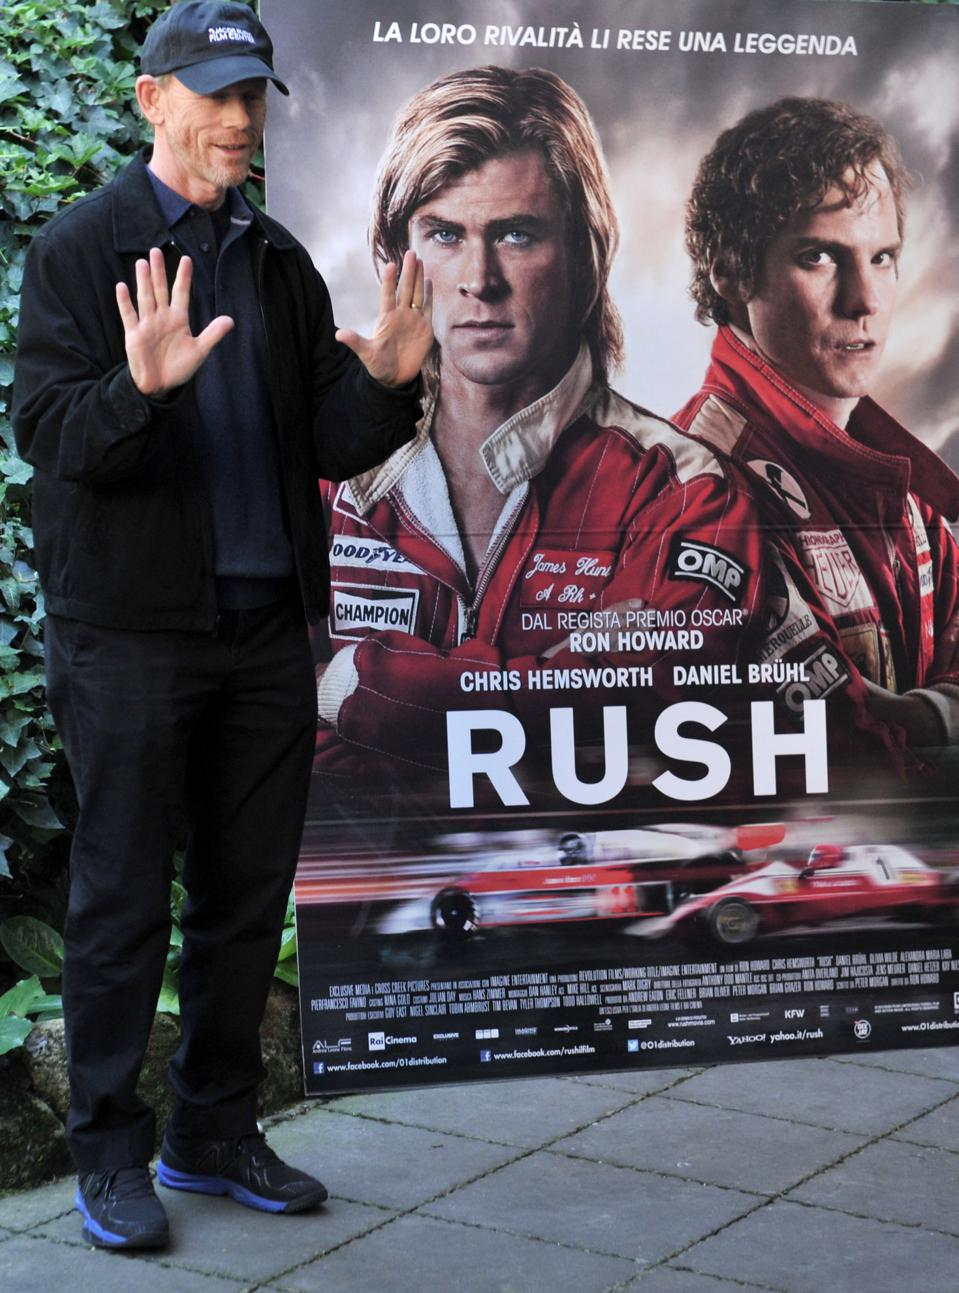 Ron Howard's Rush brought McLaren's history into the present.